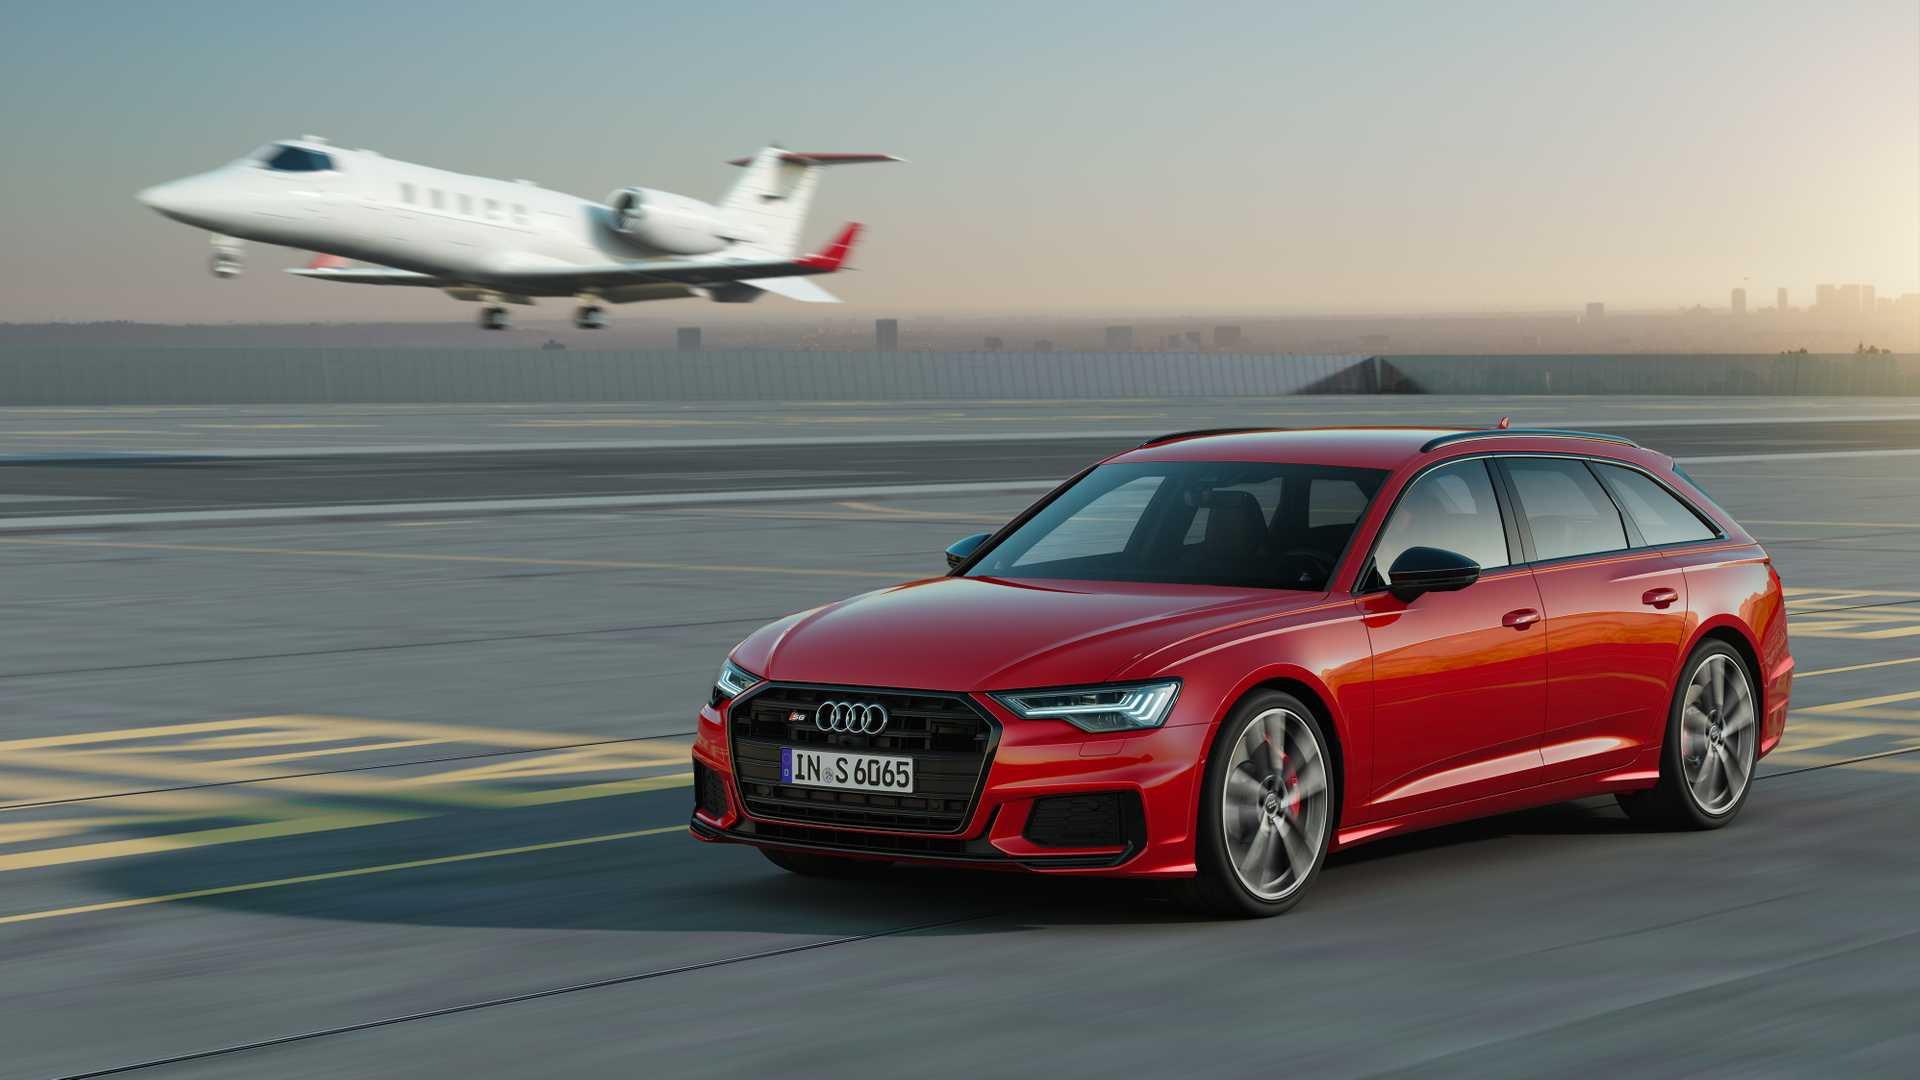 2019 Audi S6 Avant TDI (Color: Tango Red) Front Three-Quarter Wallpapers (1)